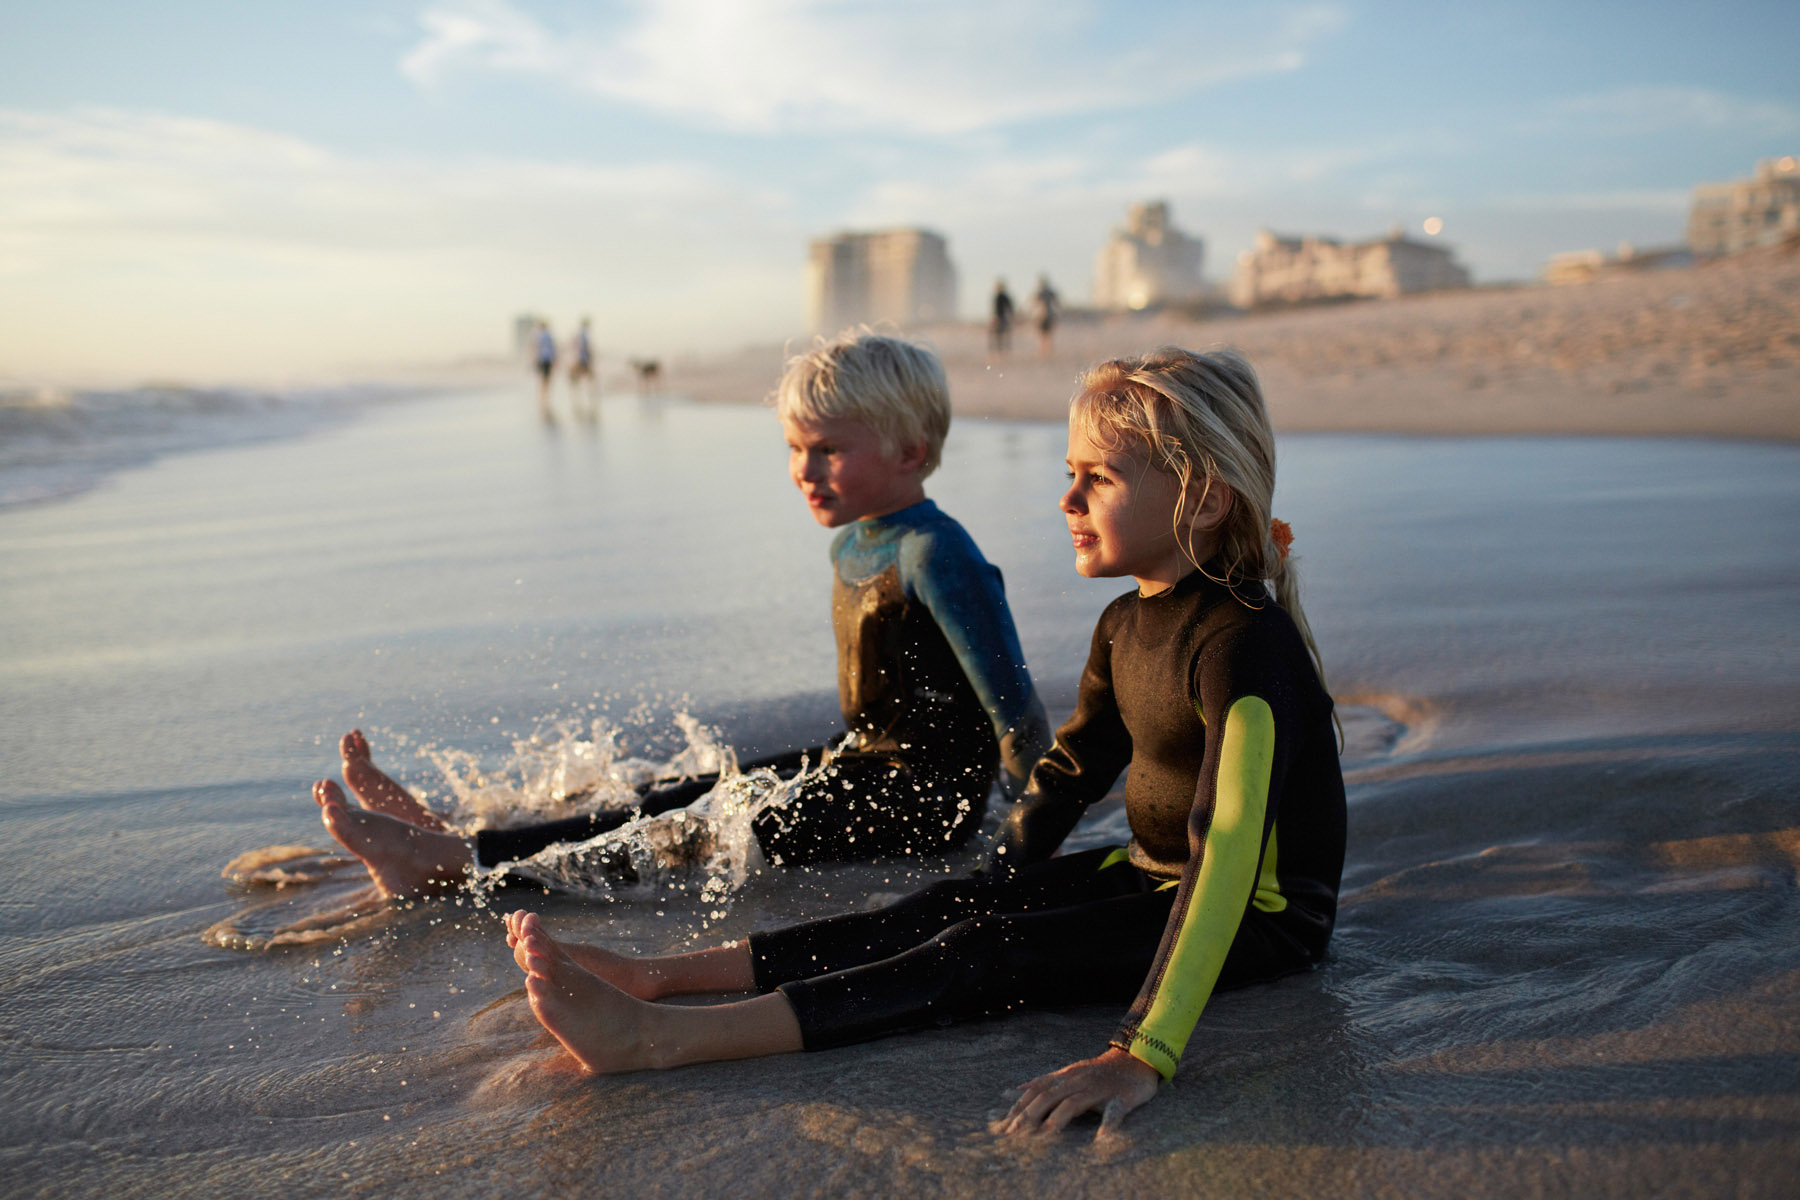 Surf kids in wetsuits relaxing in the shallows